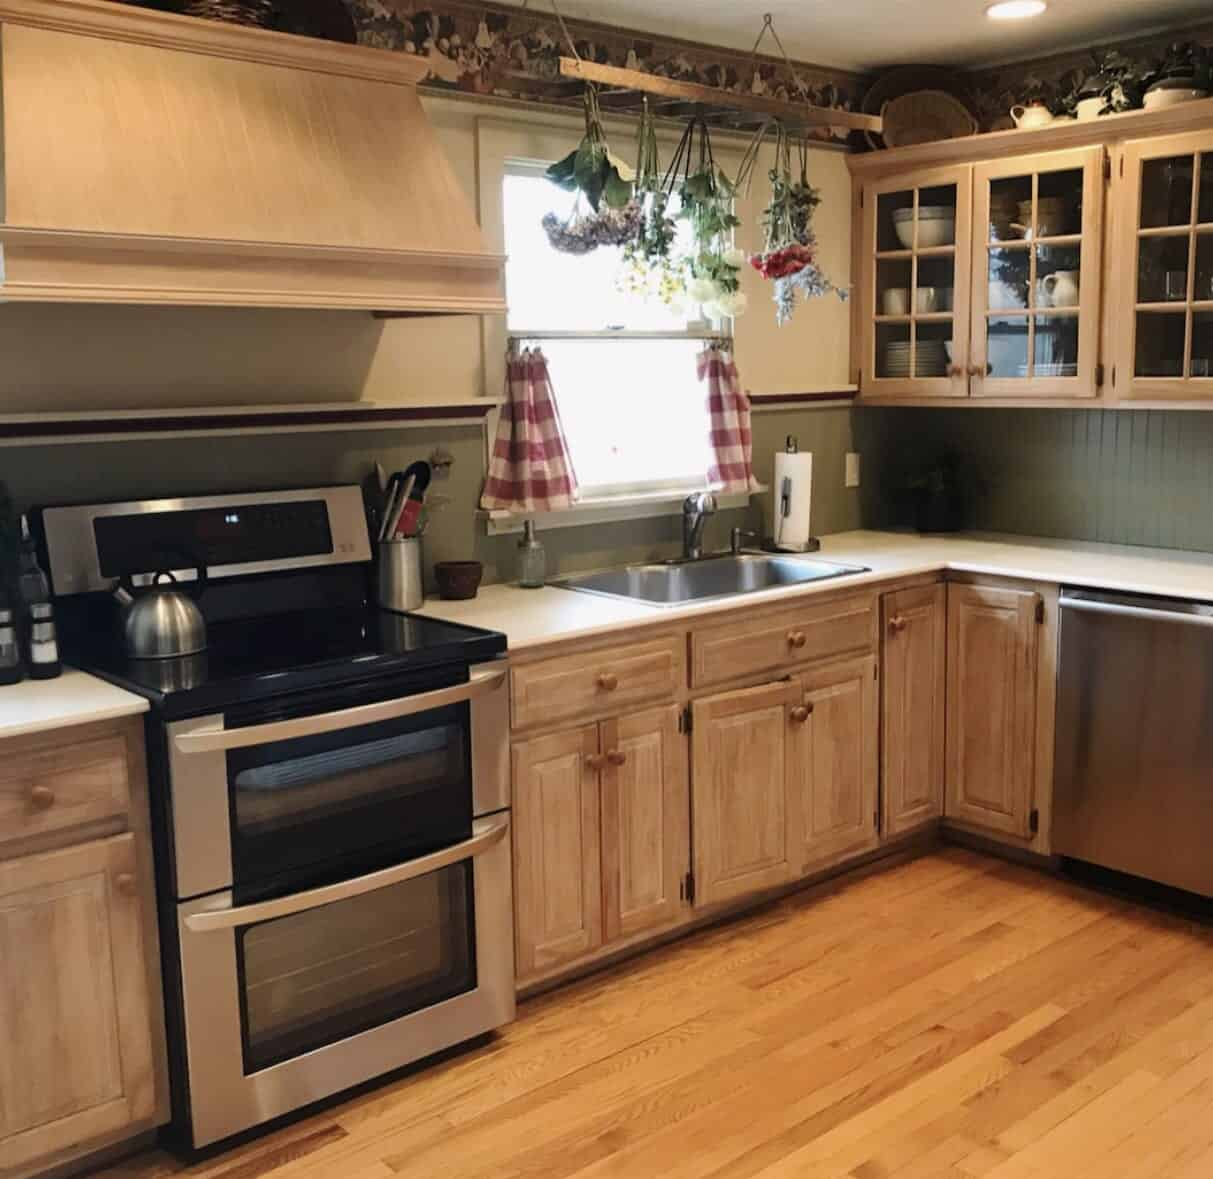 How To Paint Wood Cabinets With Chalk Paint Stacy Ling